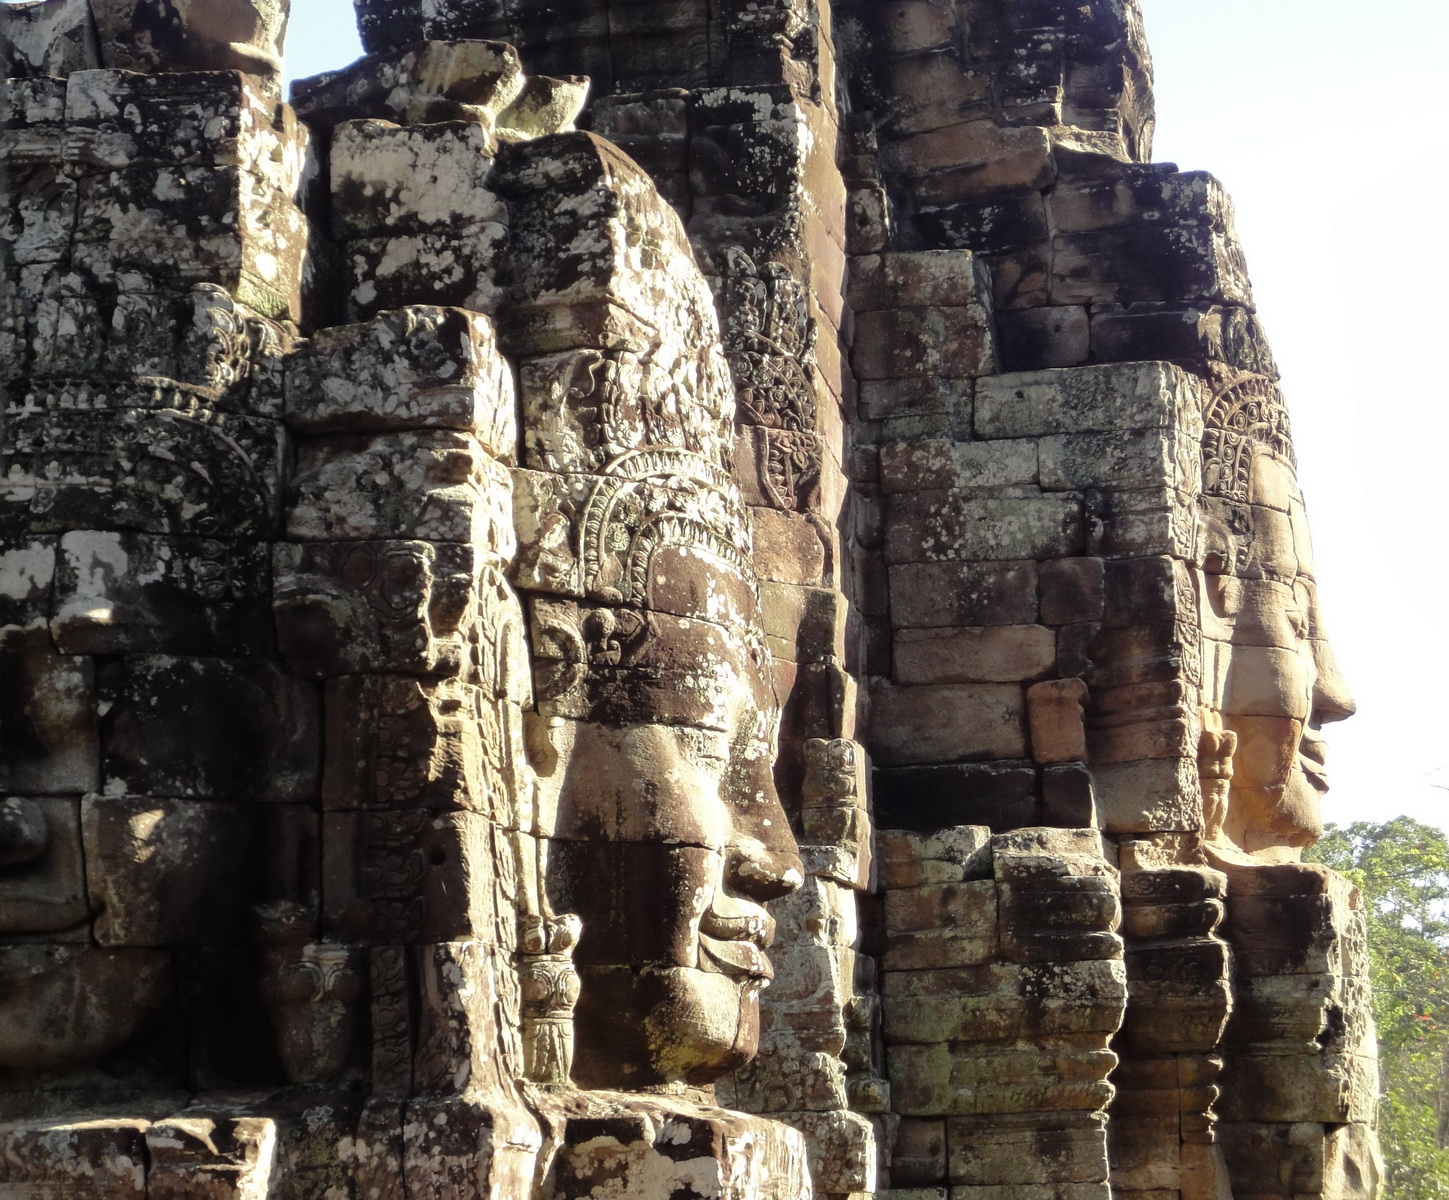 Bayon Temple NW inner gallery face towers Angkor Siem Reap 26